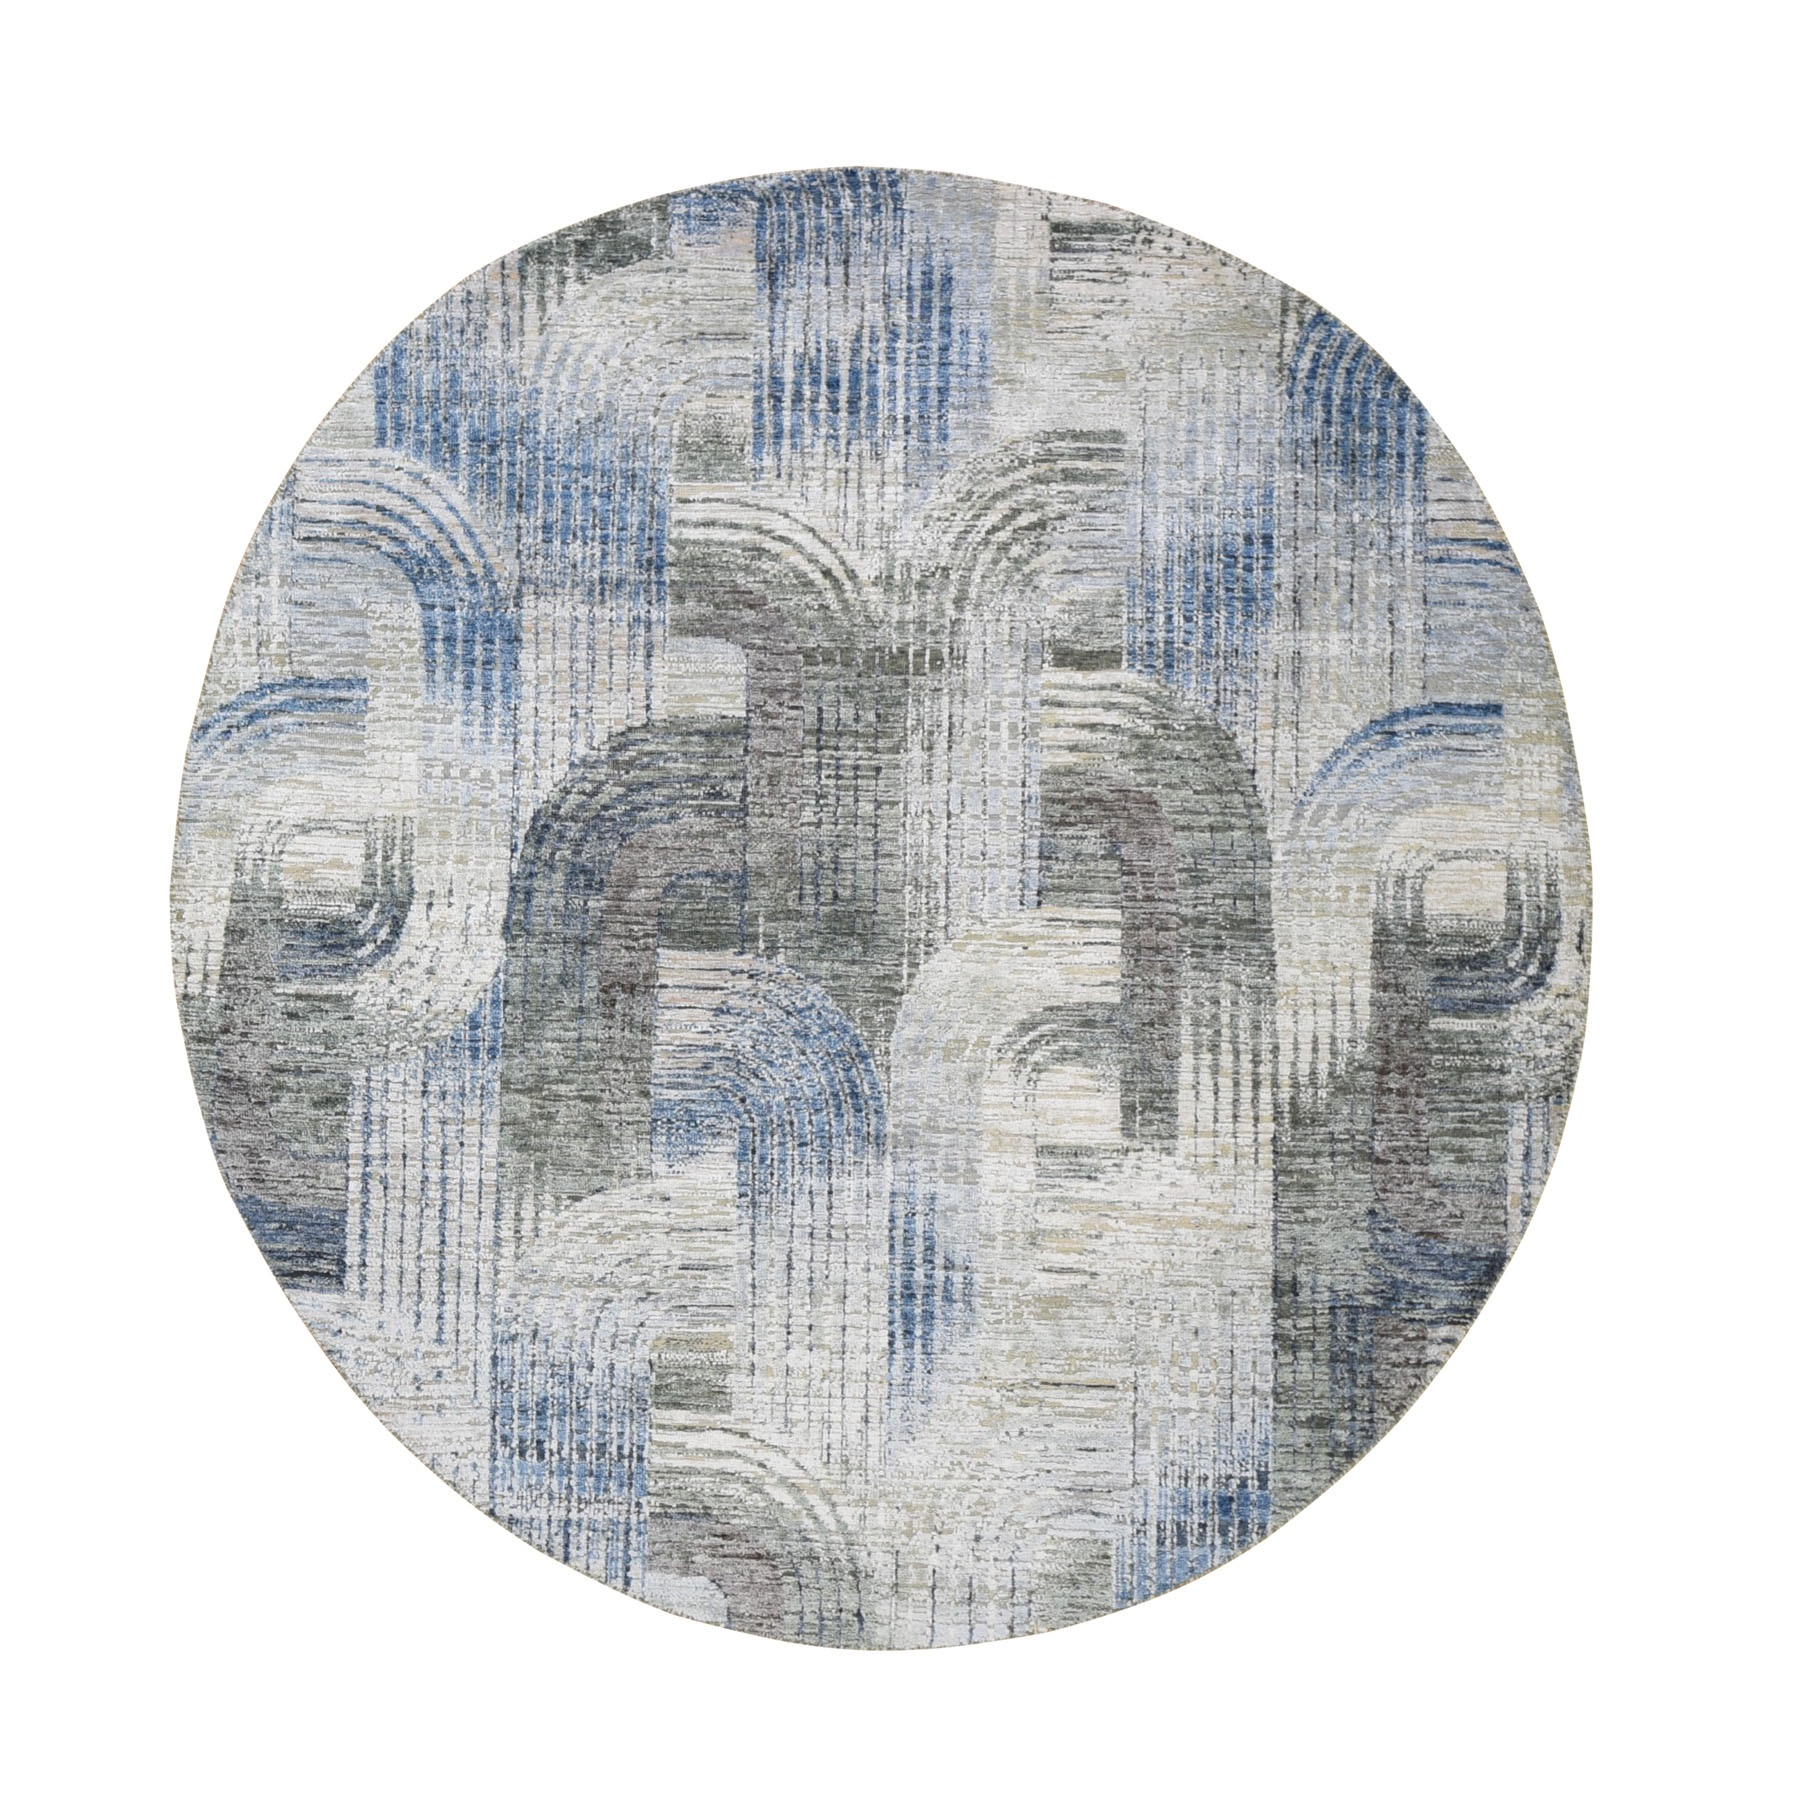 6'X6' The Intertwined Passage,Round Silk With Textured Wool Hand Knotted Oriental Rug moae9a6a